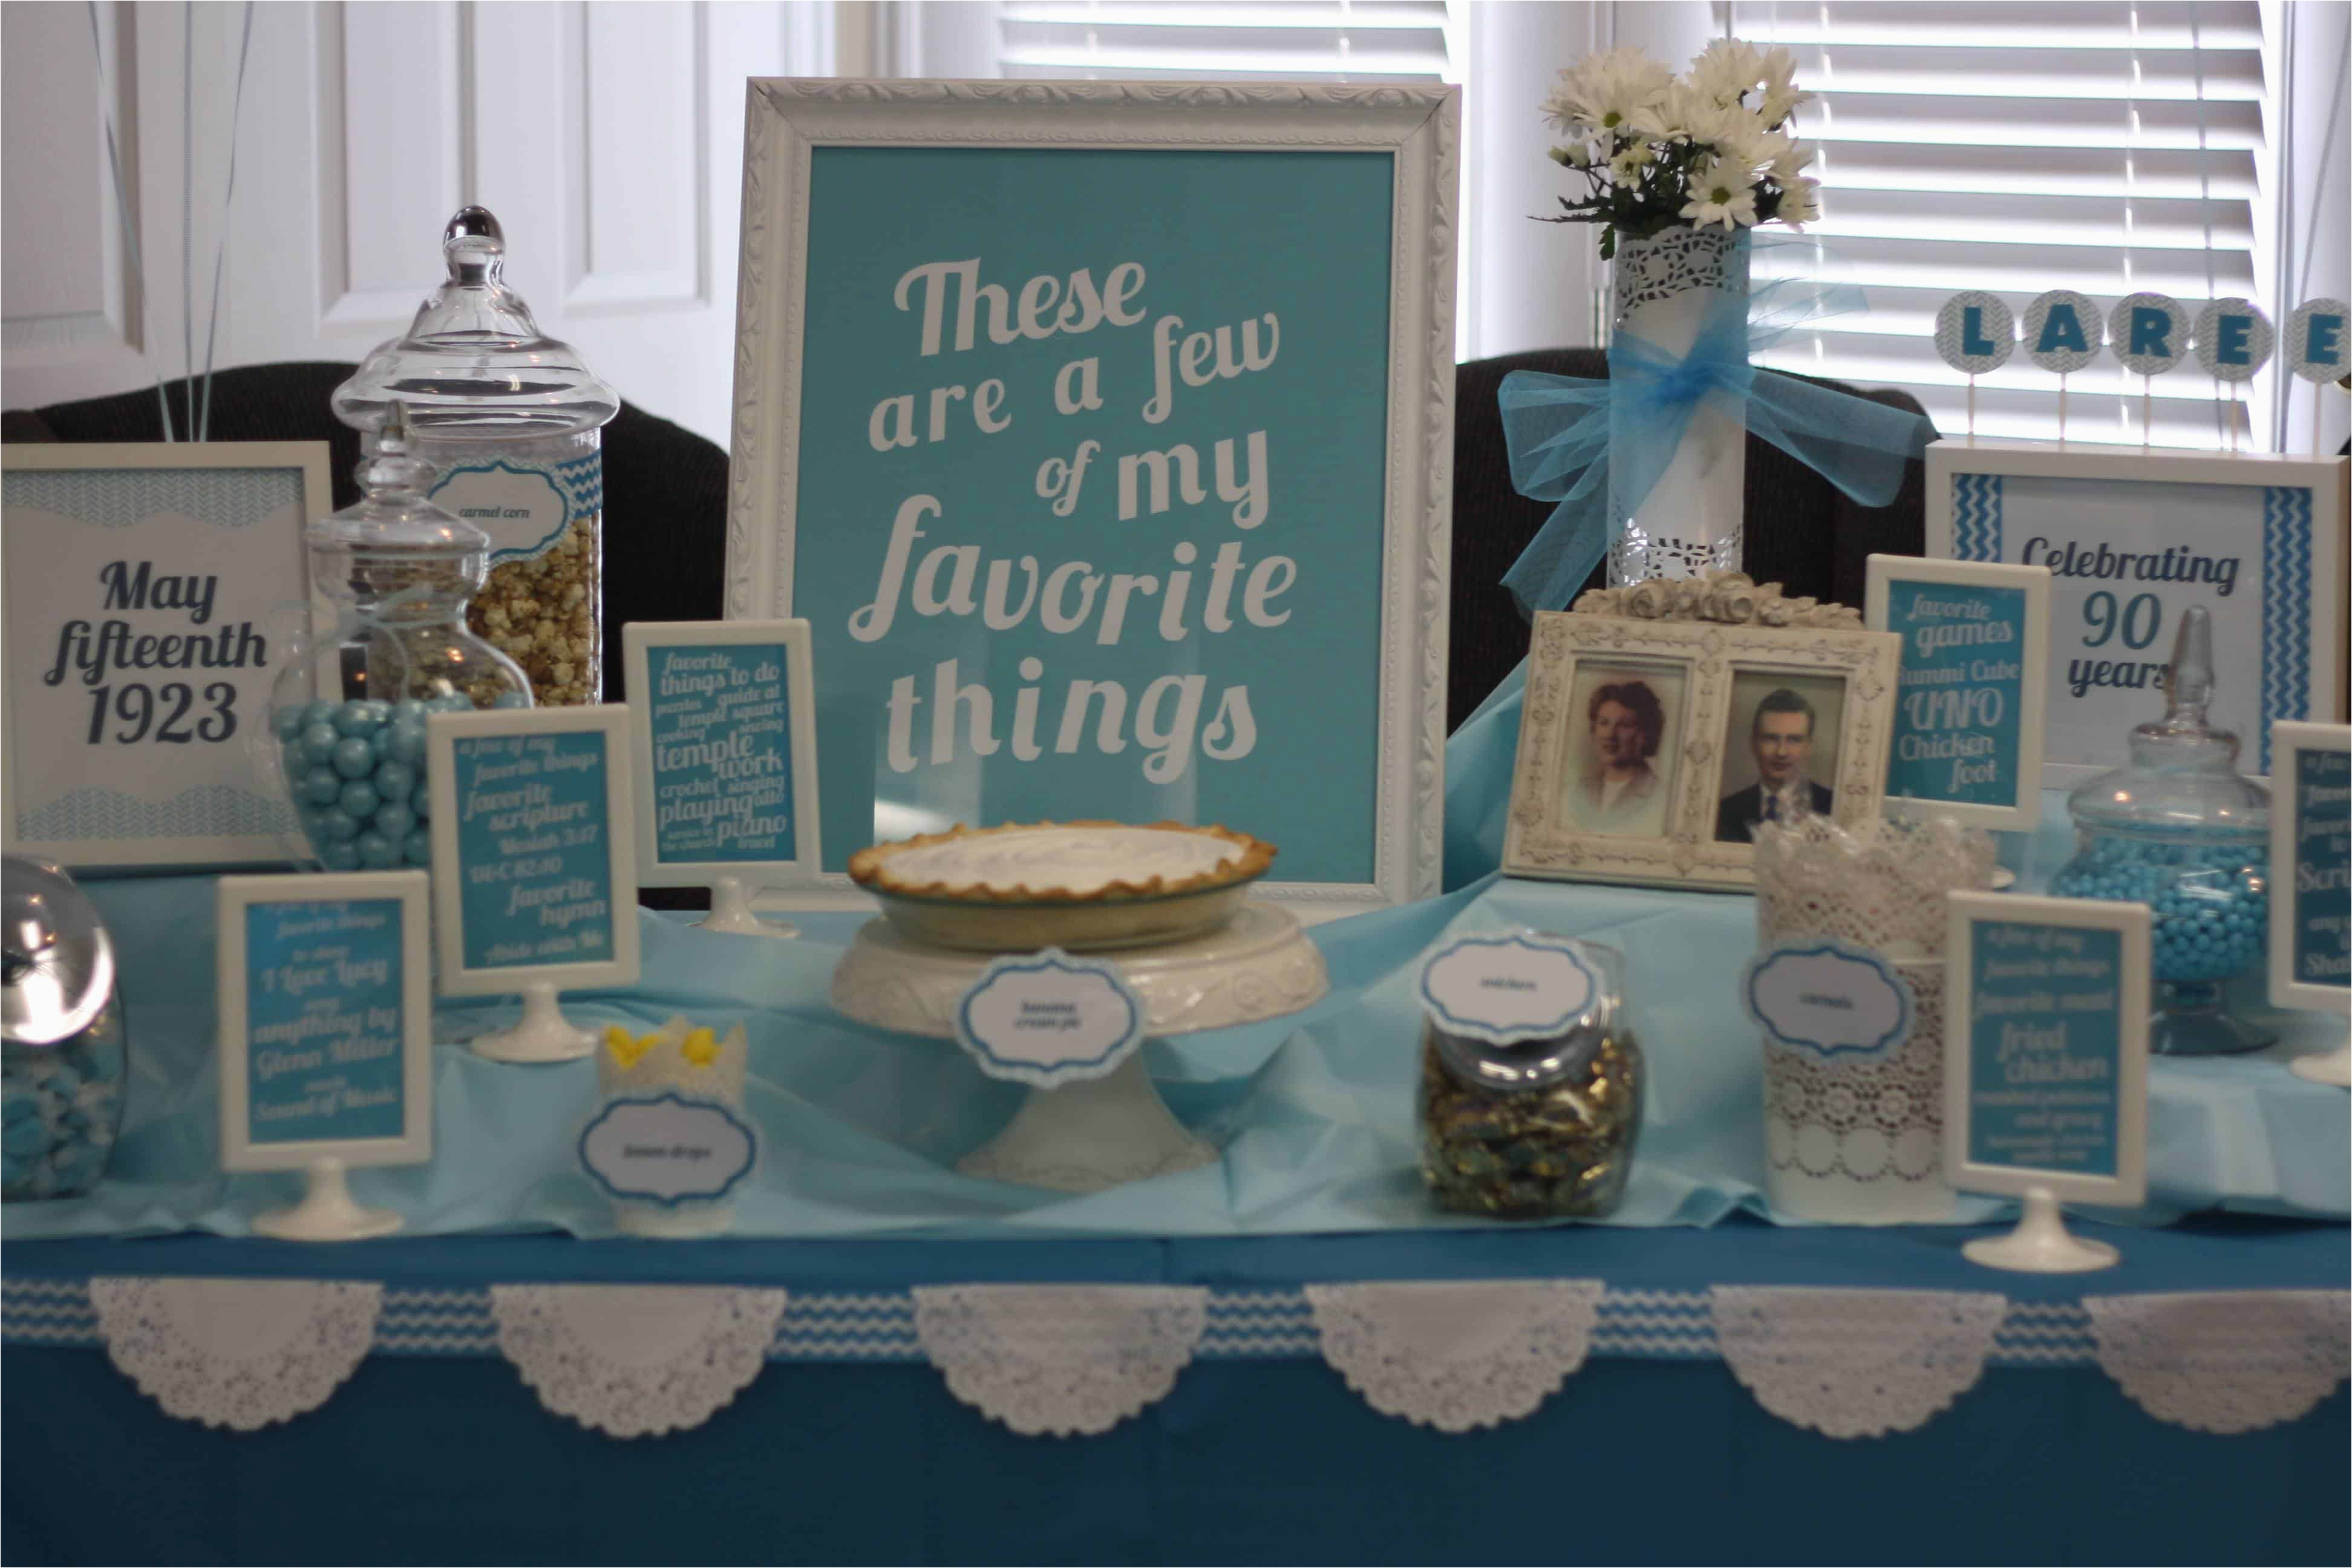 Decoration Ideas For 90th Birthday Party My Favorite Things Theme